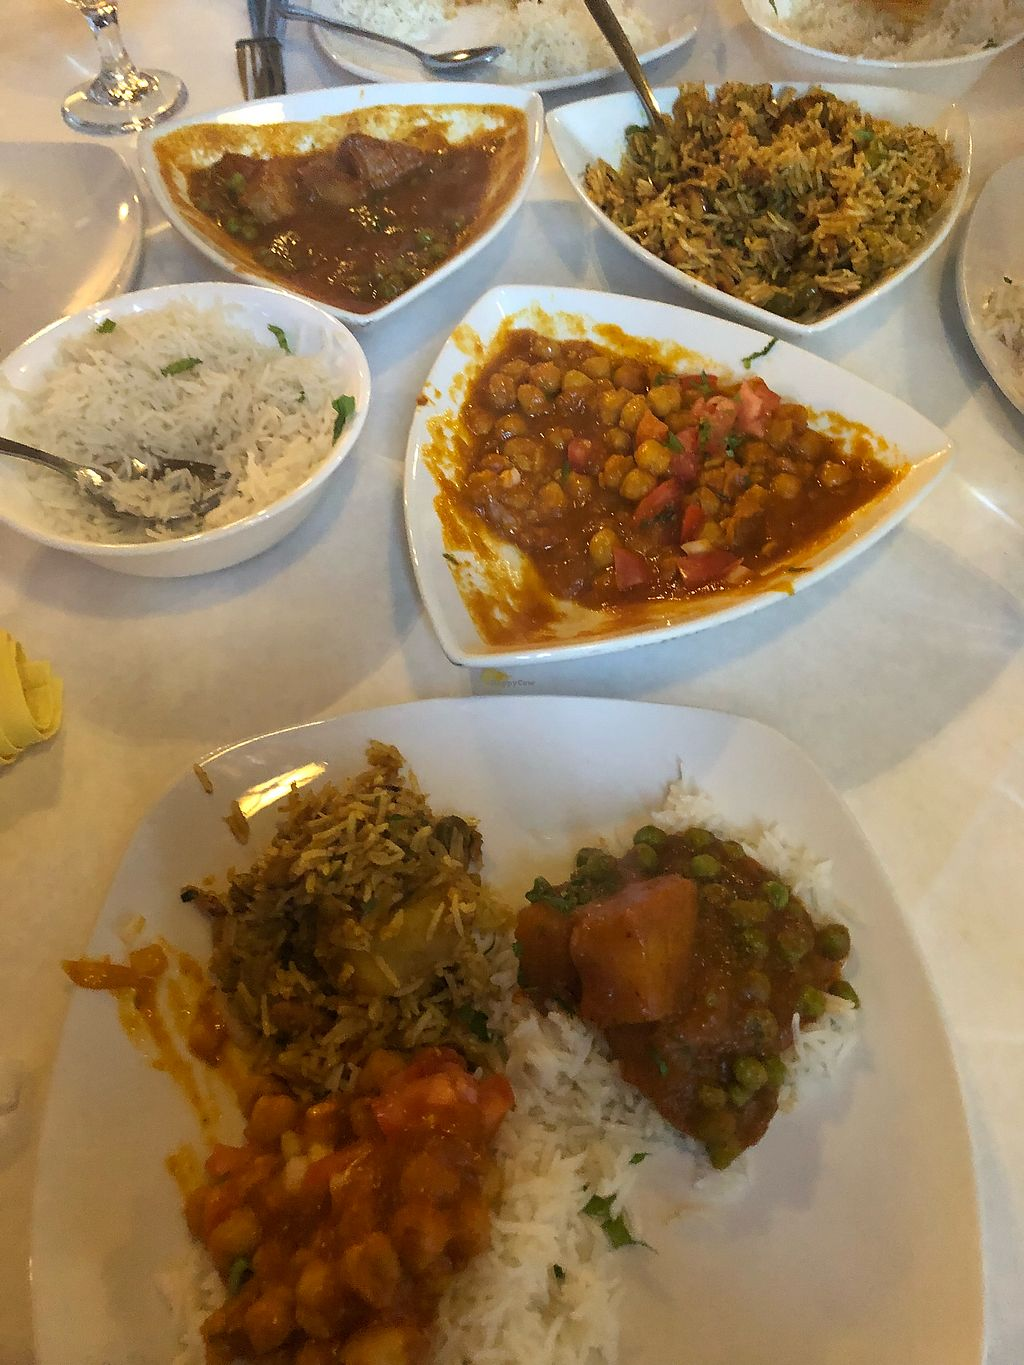 "Photo of Shahi Palace  by <a href=""/members/profile/Jadediana"">Jadediana</a> <br/>Sharing: Alu Mater, Vegetable Biryani, and Chana Masala  <br/> April 7, 2018  - <a href='/contact/abuse/image/115816/382152'>Report</a>"